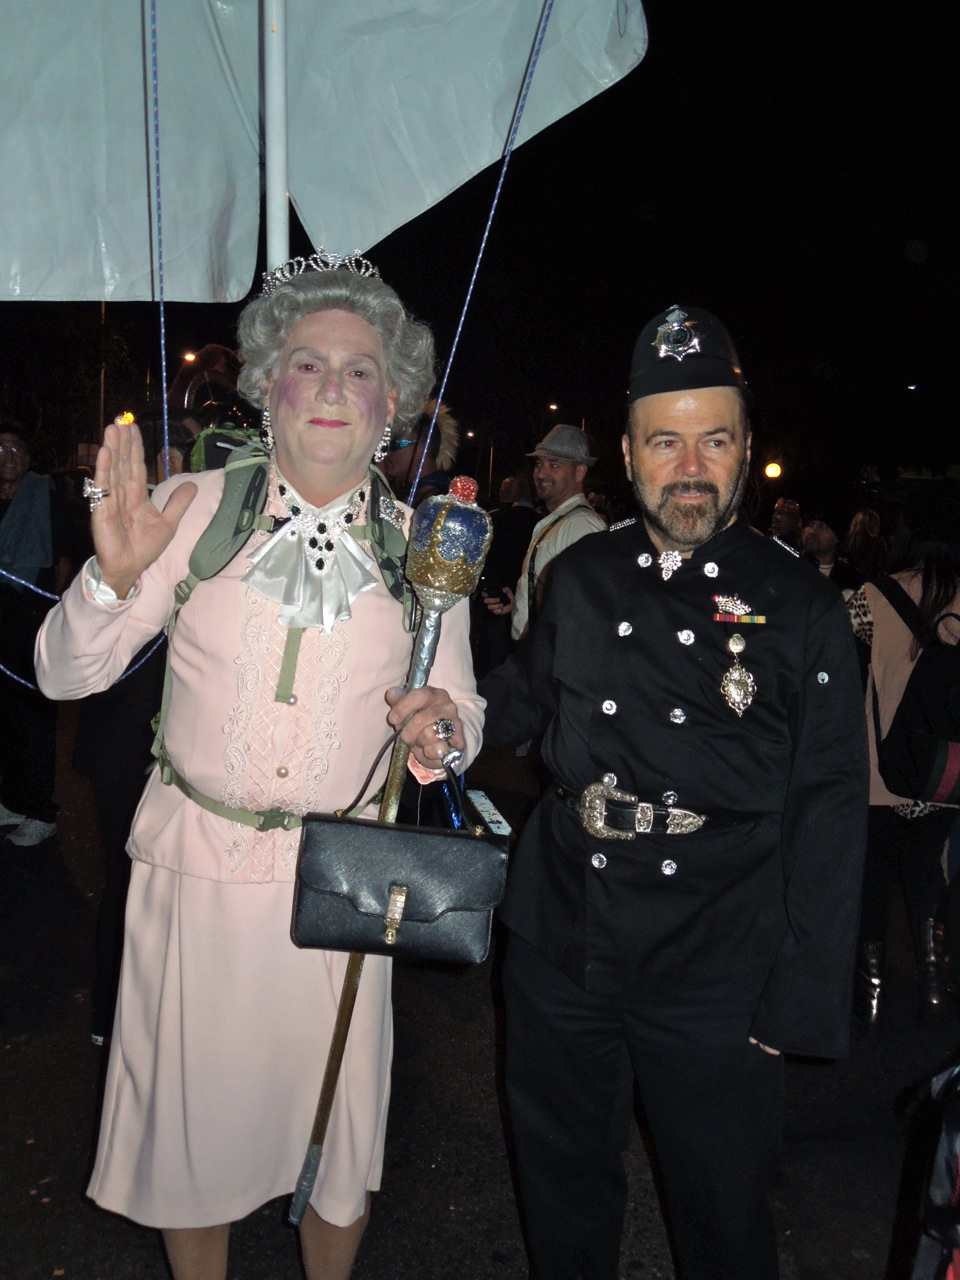 queen copper costumes west hollywood halloween carnaval - Mormon Halloween Costumes